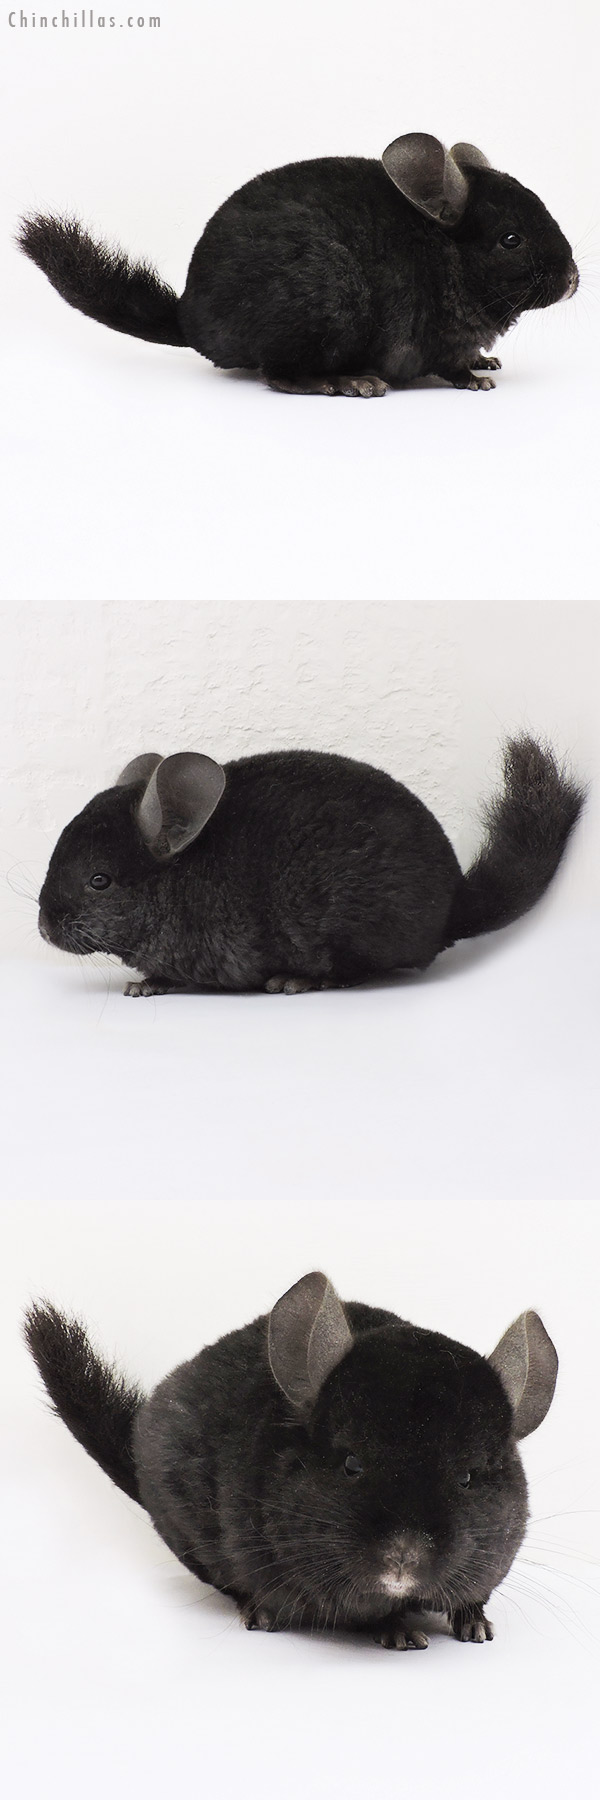 15142 Ebony Quasi Locken Male Chinchilla